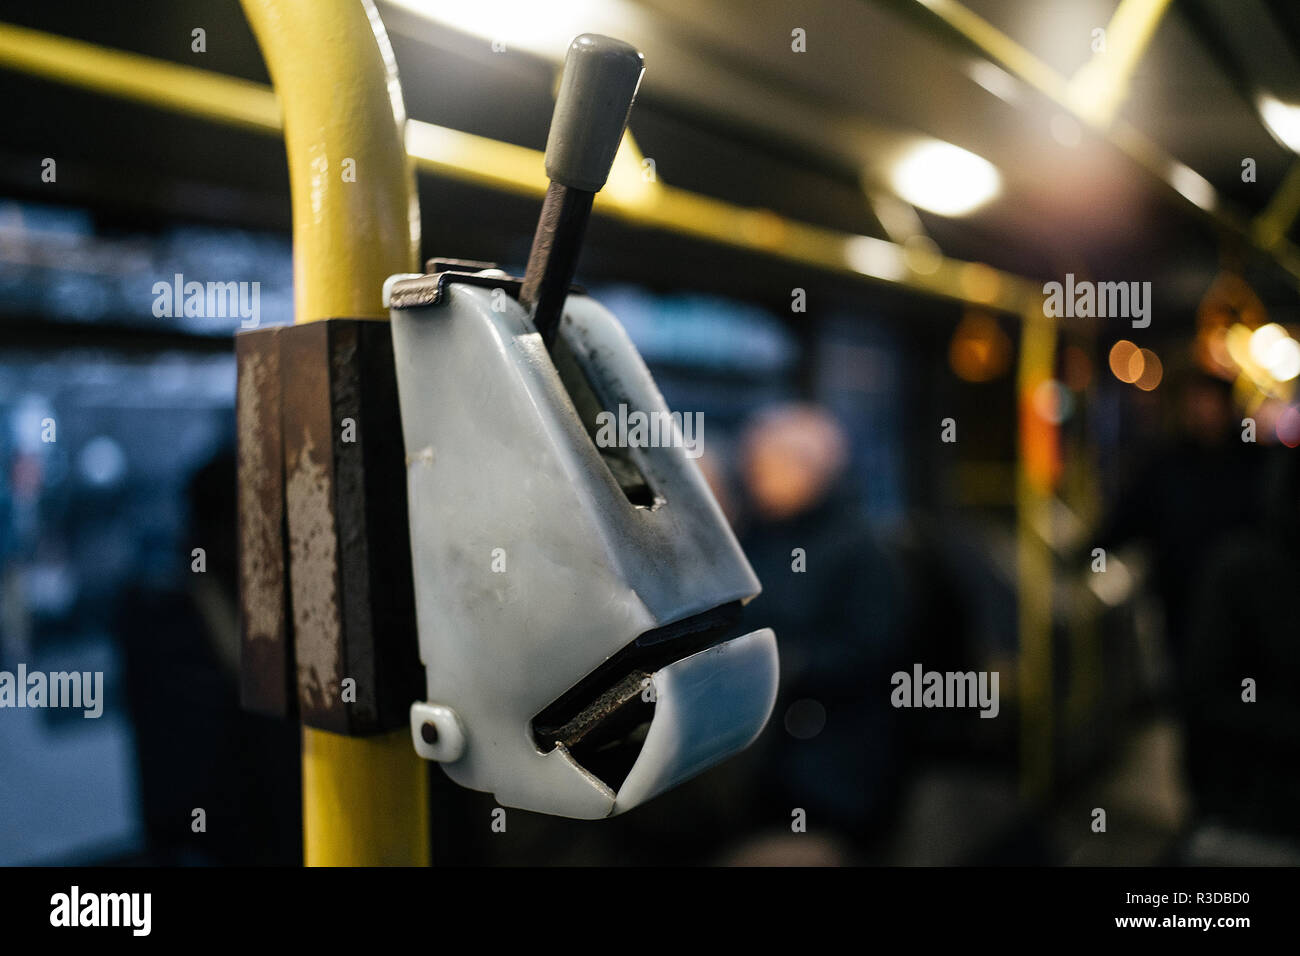 Old bus punch validator close up in Kyiv, Ukraine - Stock Image